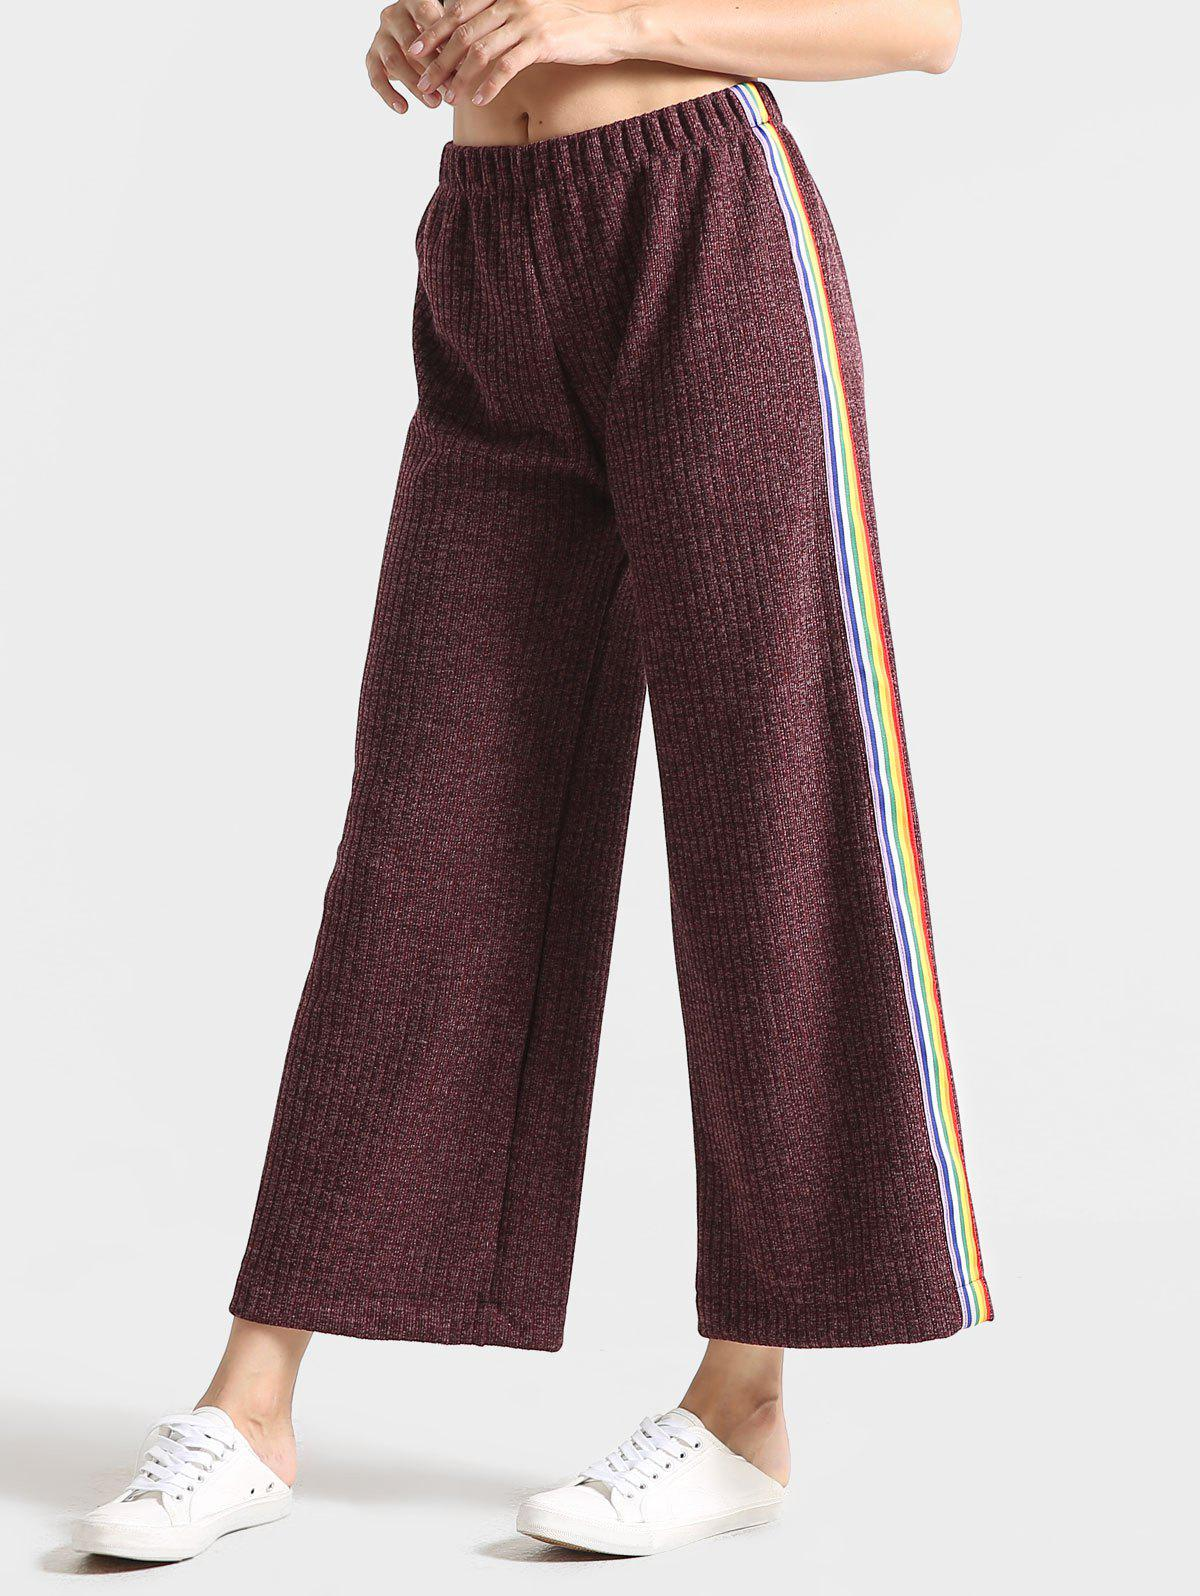 Heathered Costine A Righe Gamba Larga Pantaloni